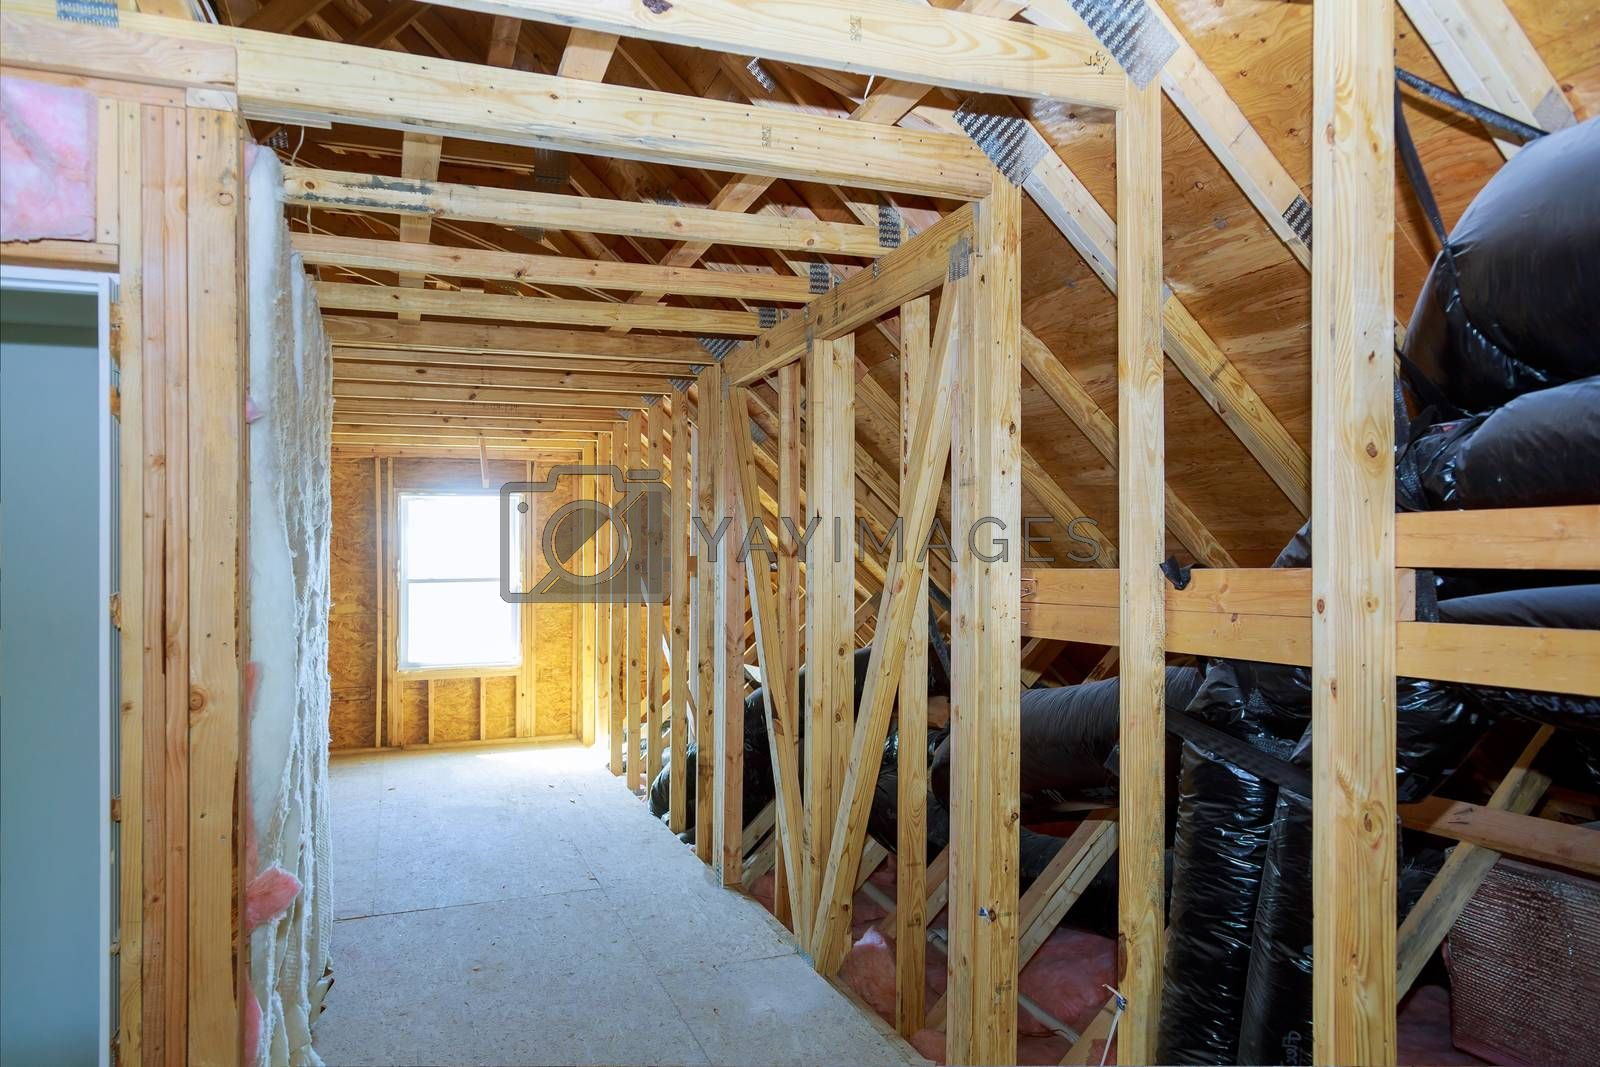 Thermal insulation in process of attic construction frame house a newly constructed home